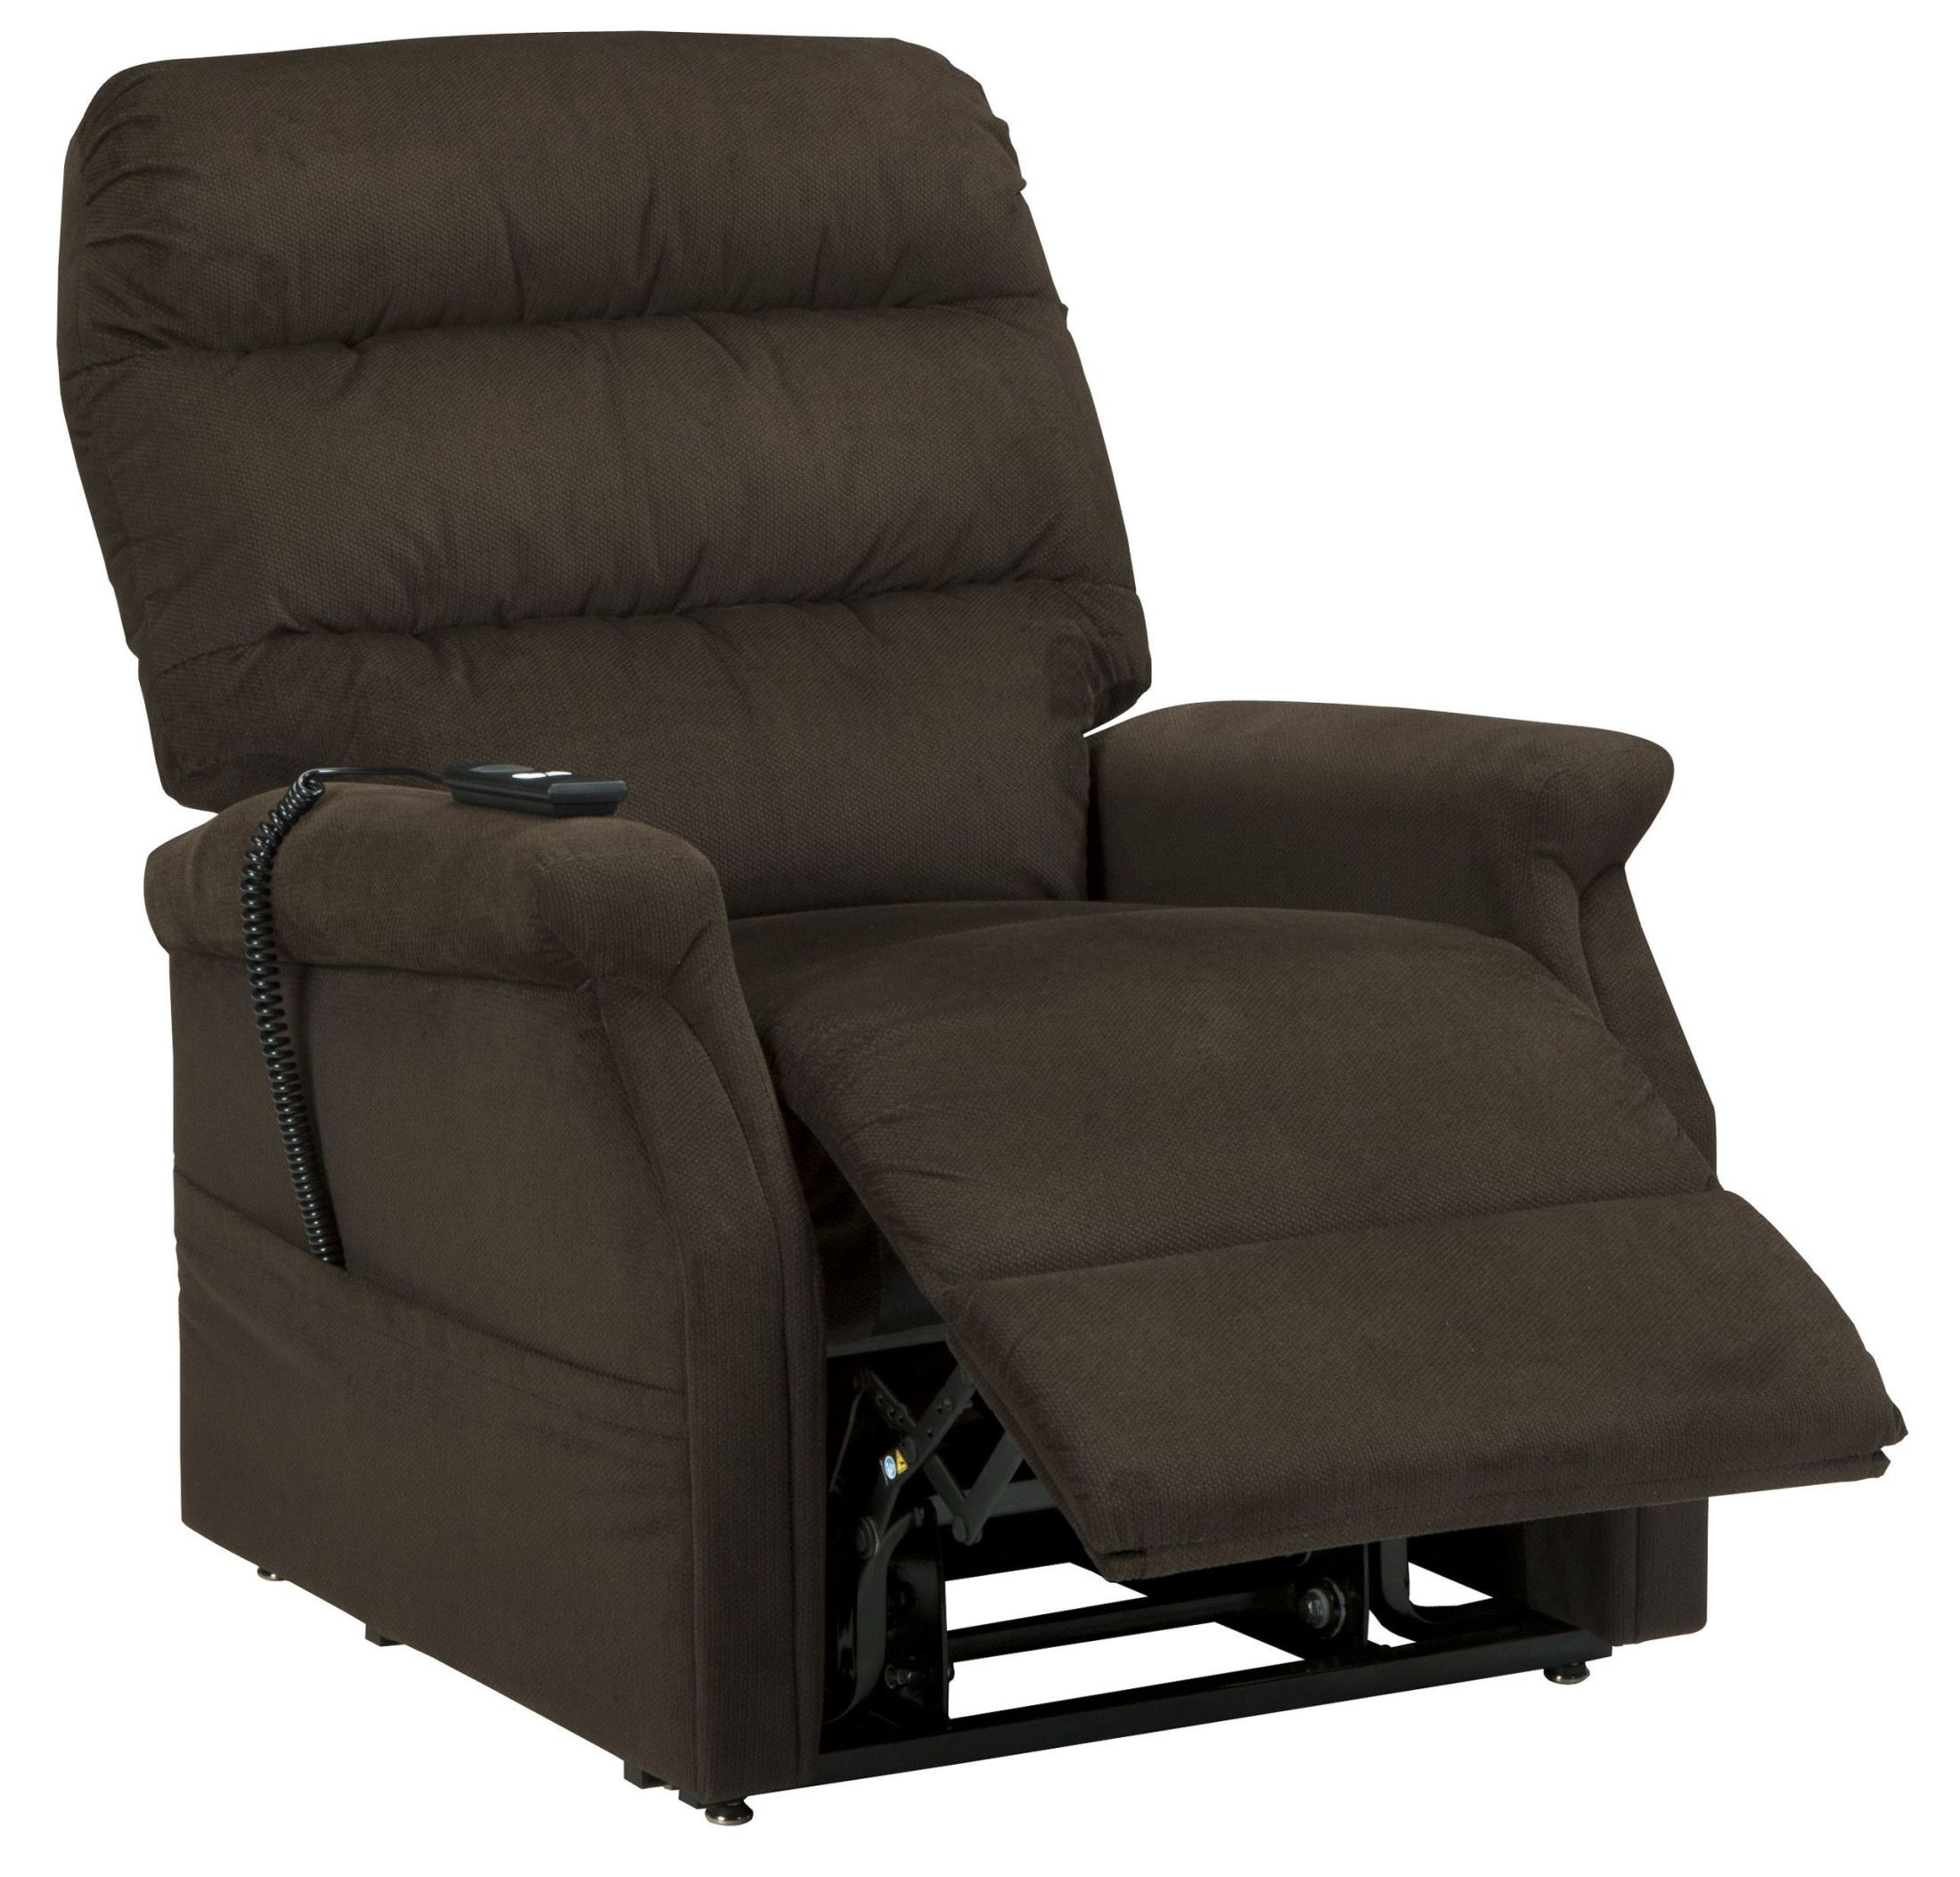 Brenyth Chocolate Power Lift Recliner From Ashley 7460212